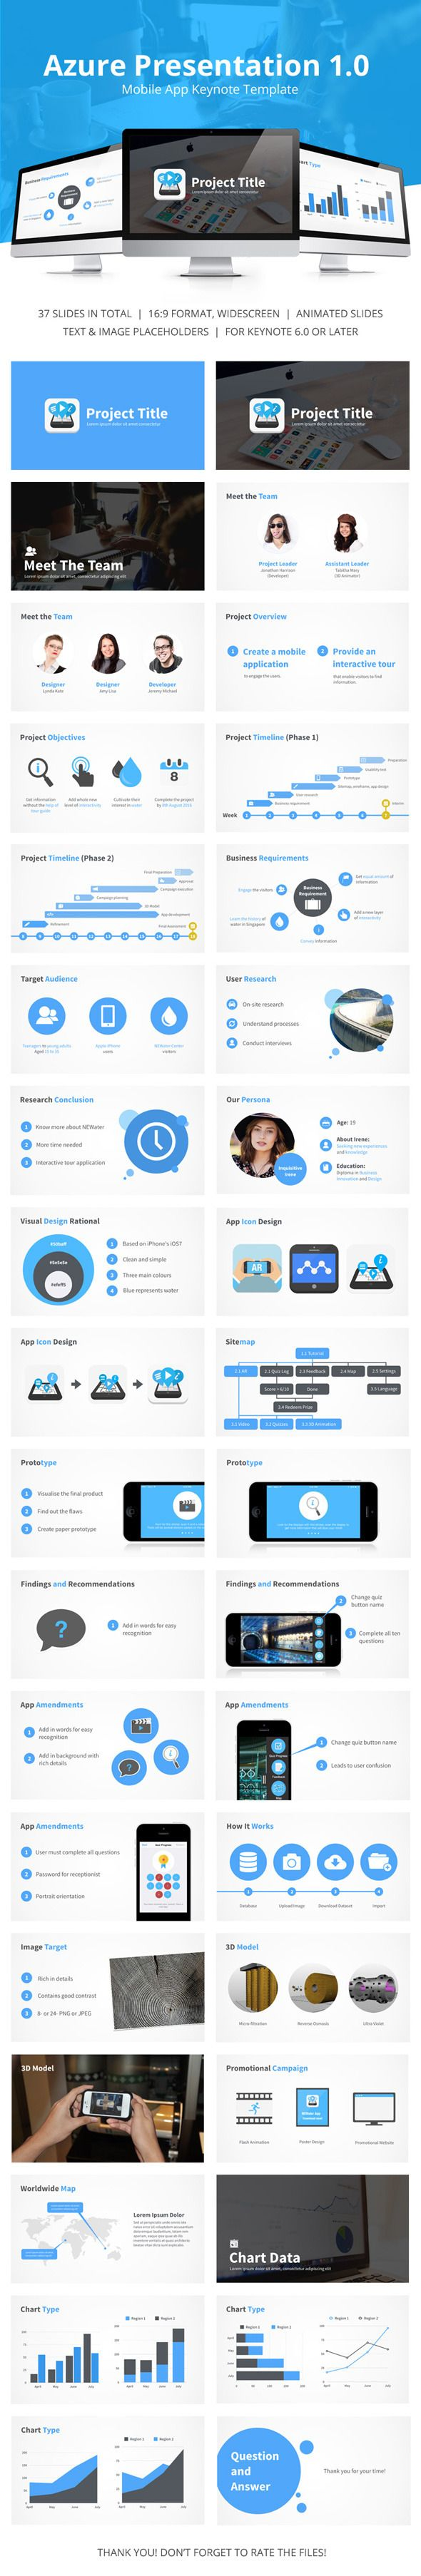 azure mobile app presentation template design download http